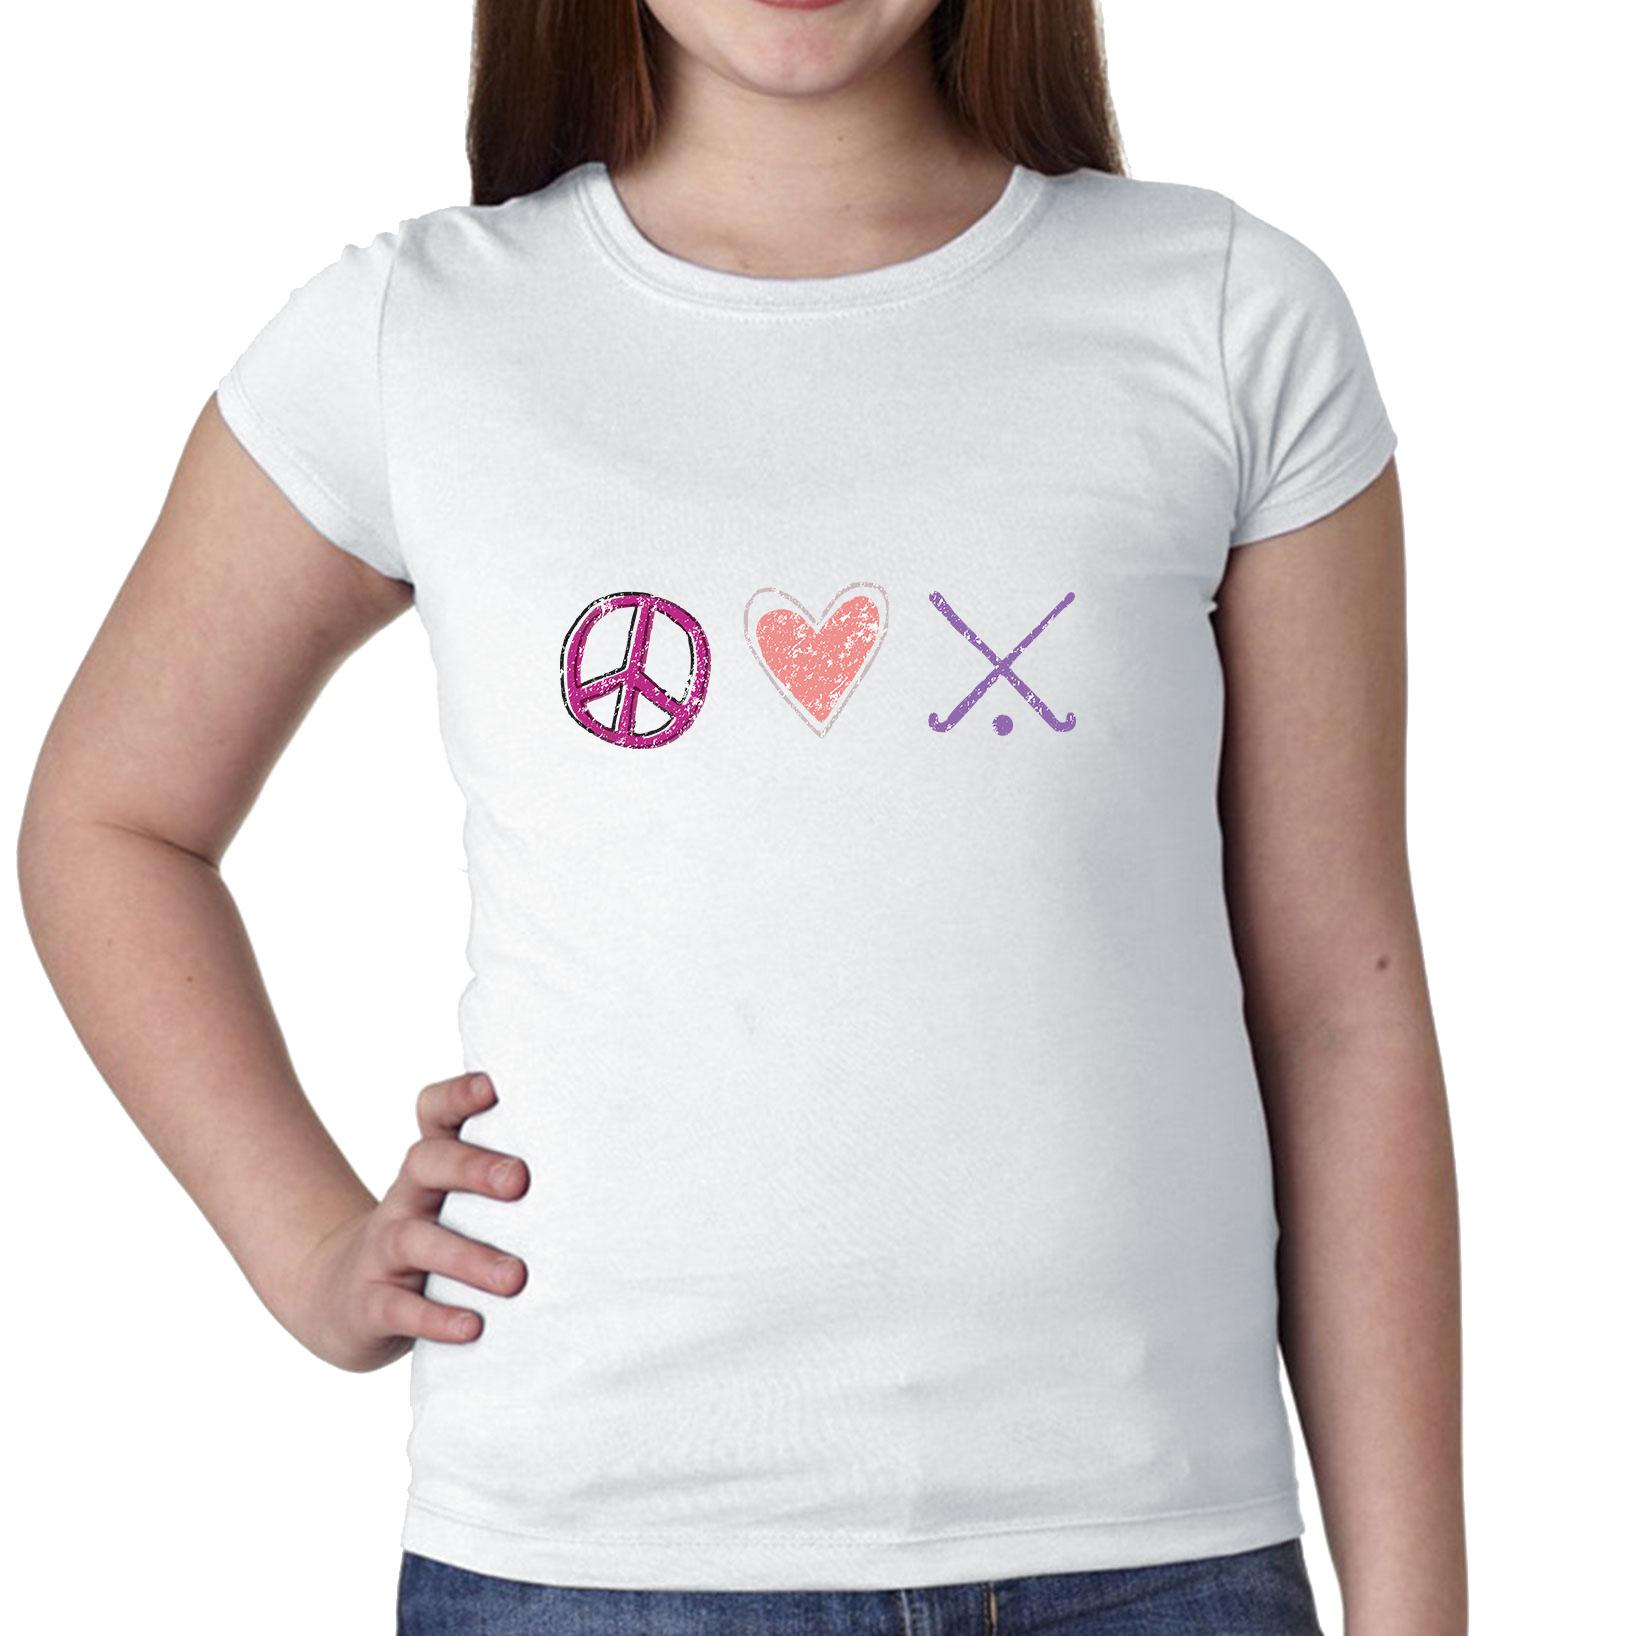 Peace Love Field Hockey Symbols Crossed Sticks Girl's Cotton Youth T-Shirt by Hollywood Thread